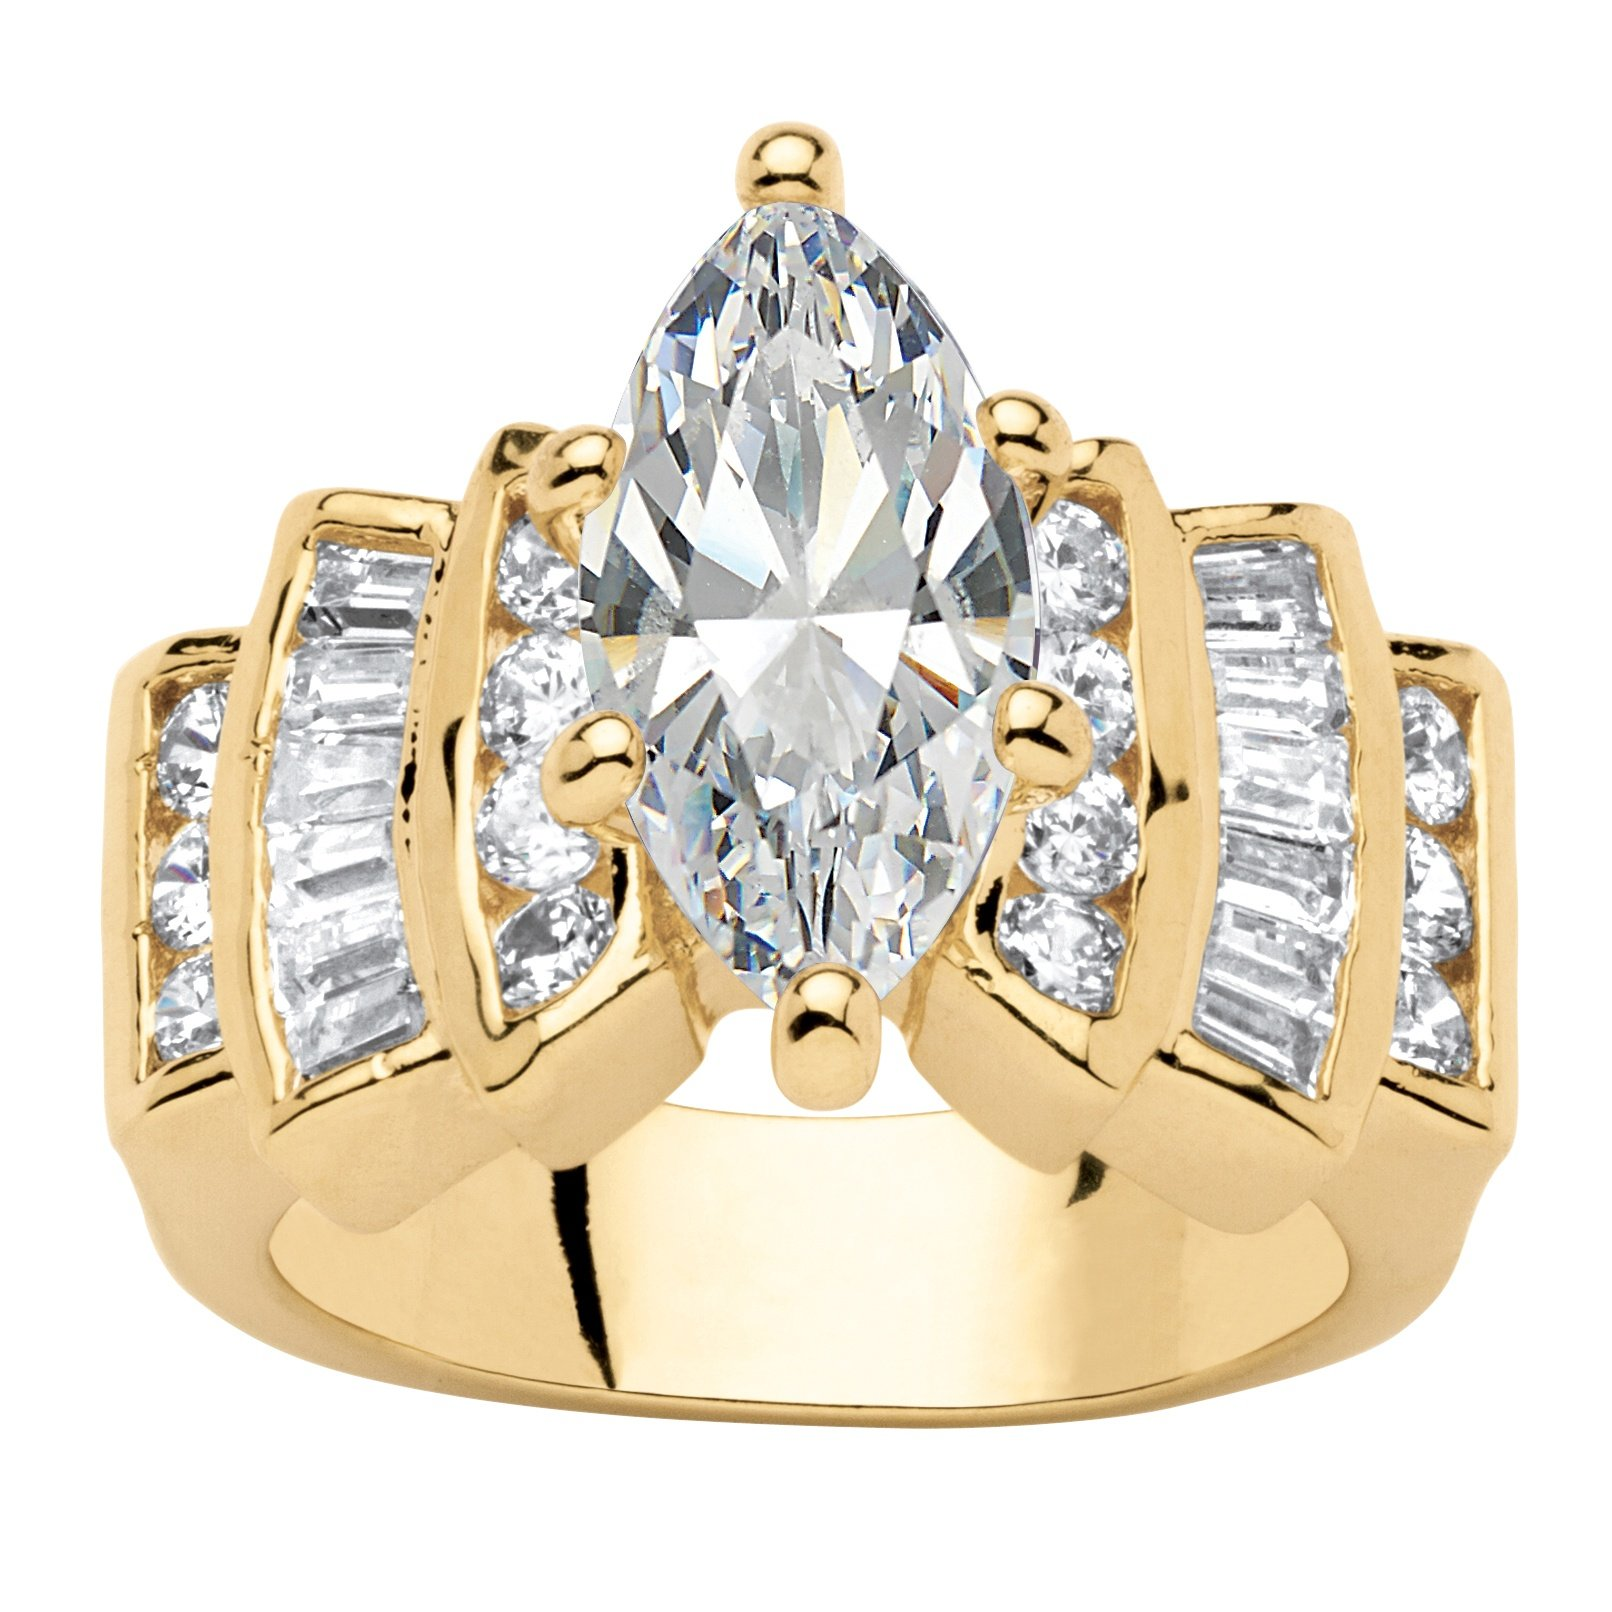 Palm Beach Jewelry 14K Yellow Gold-plated Marquise Cut Cubic Zirconia Step Top Engagement Anniversary Ring Size 10